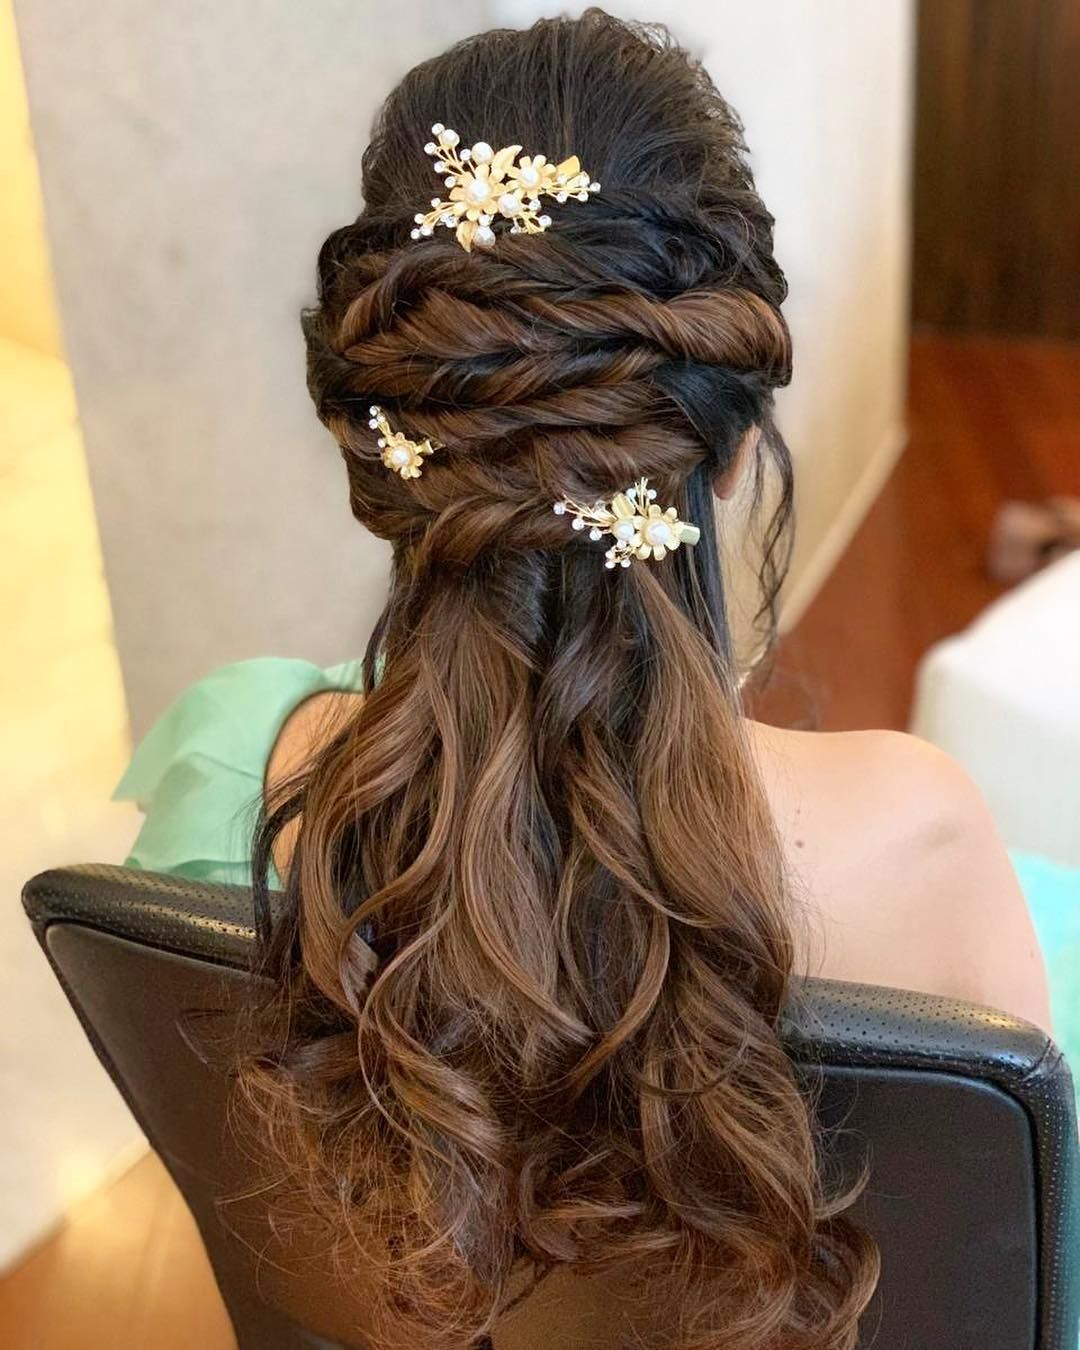 Safely Coining This Hair Do As A Classic Disney Princess Style Hair Hairdo Princess Style Hair